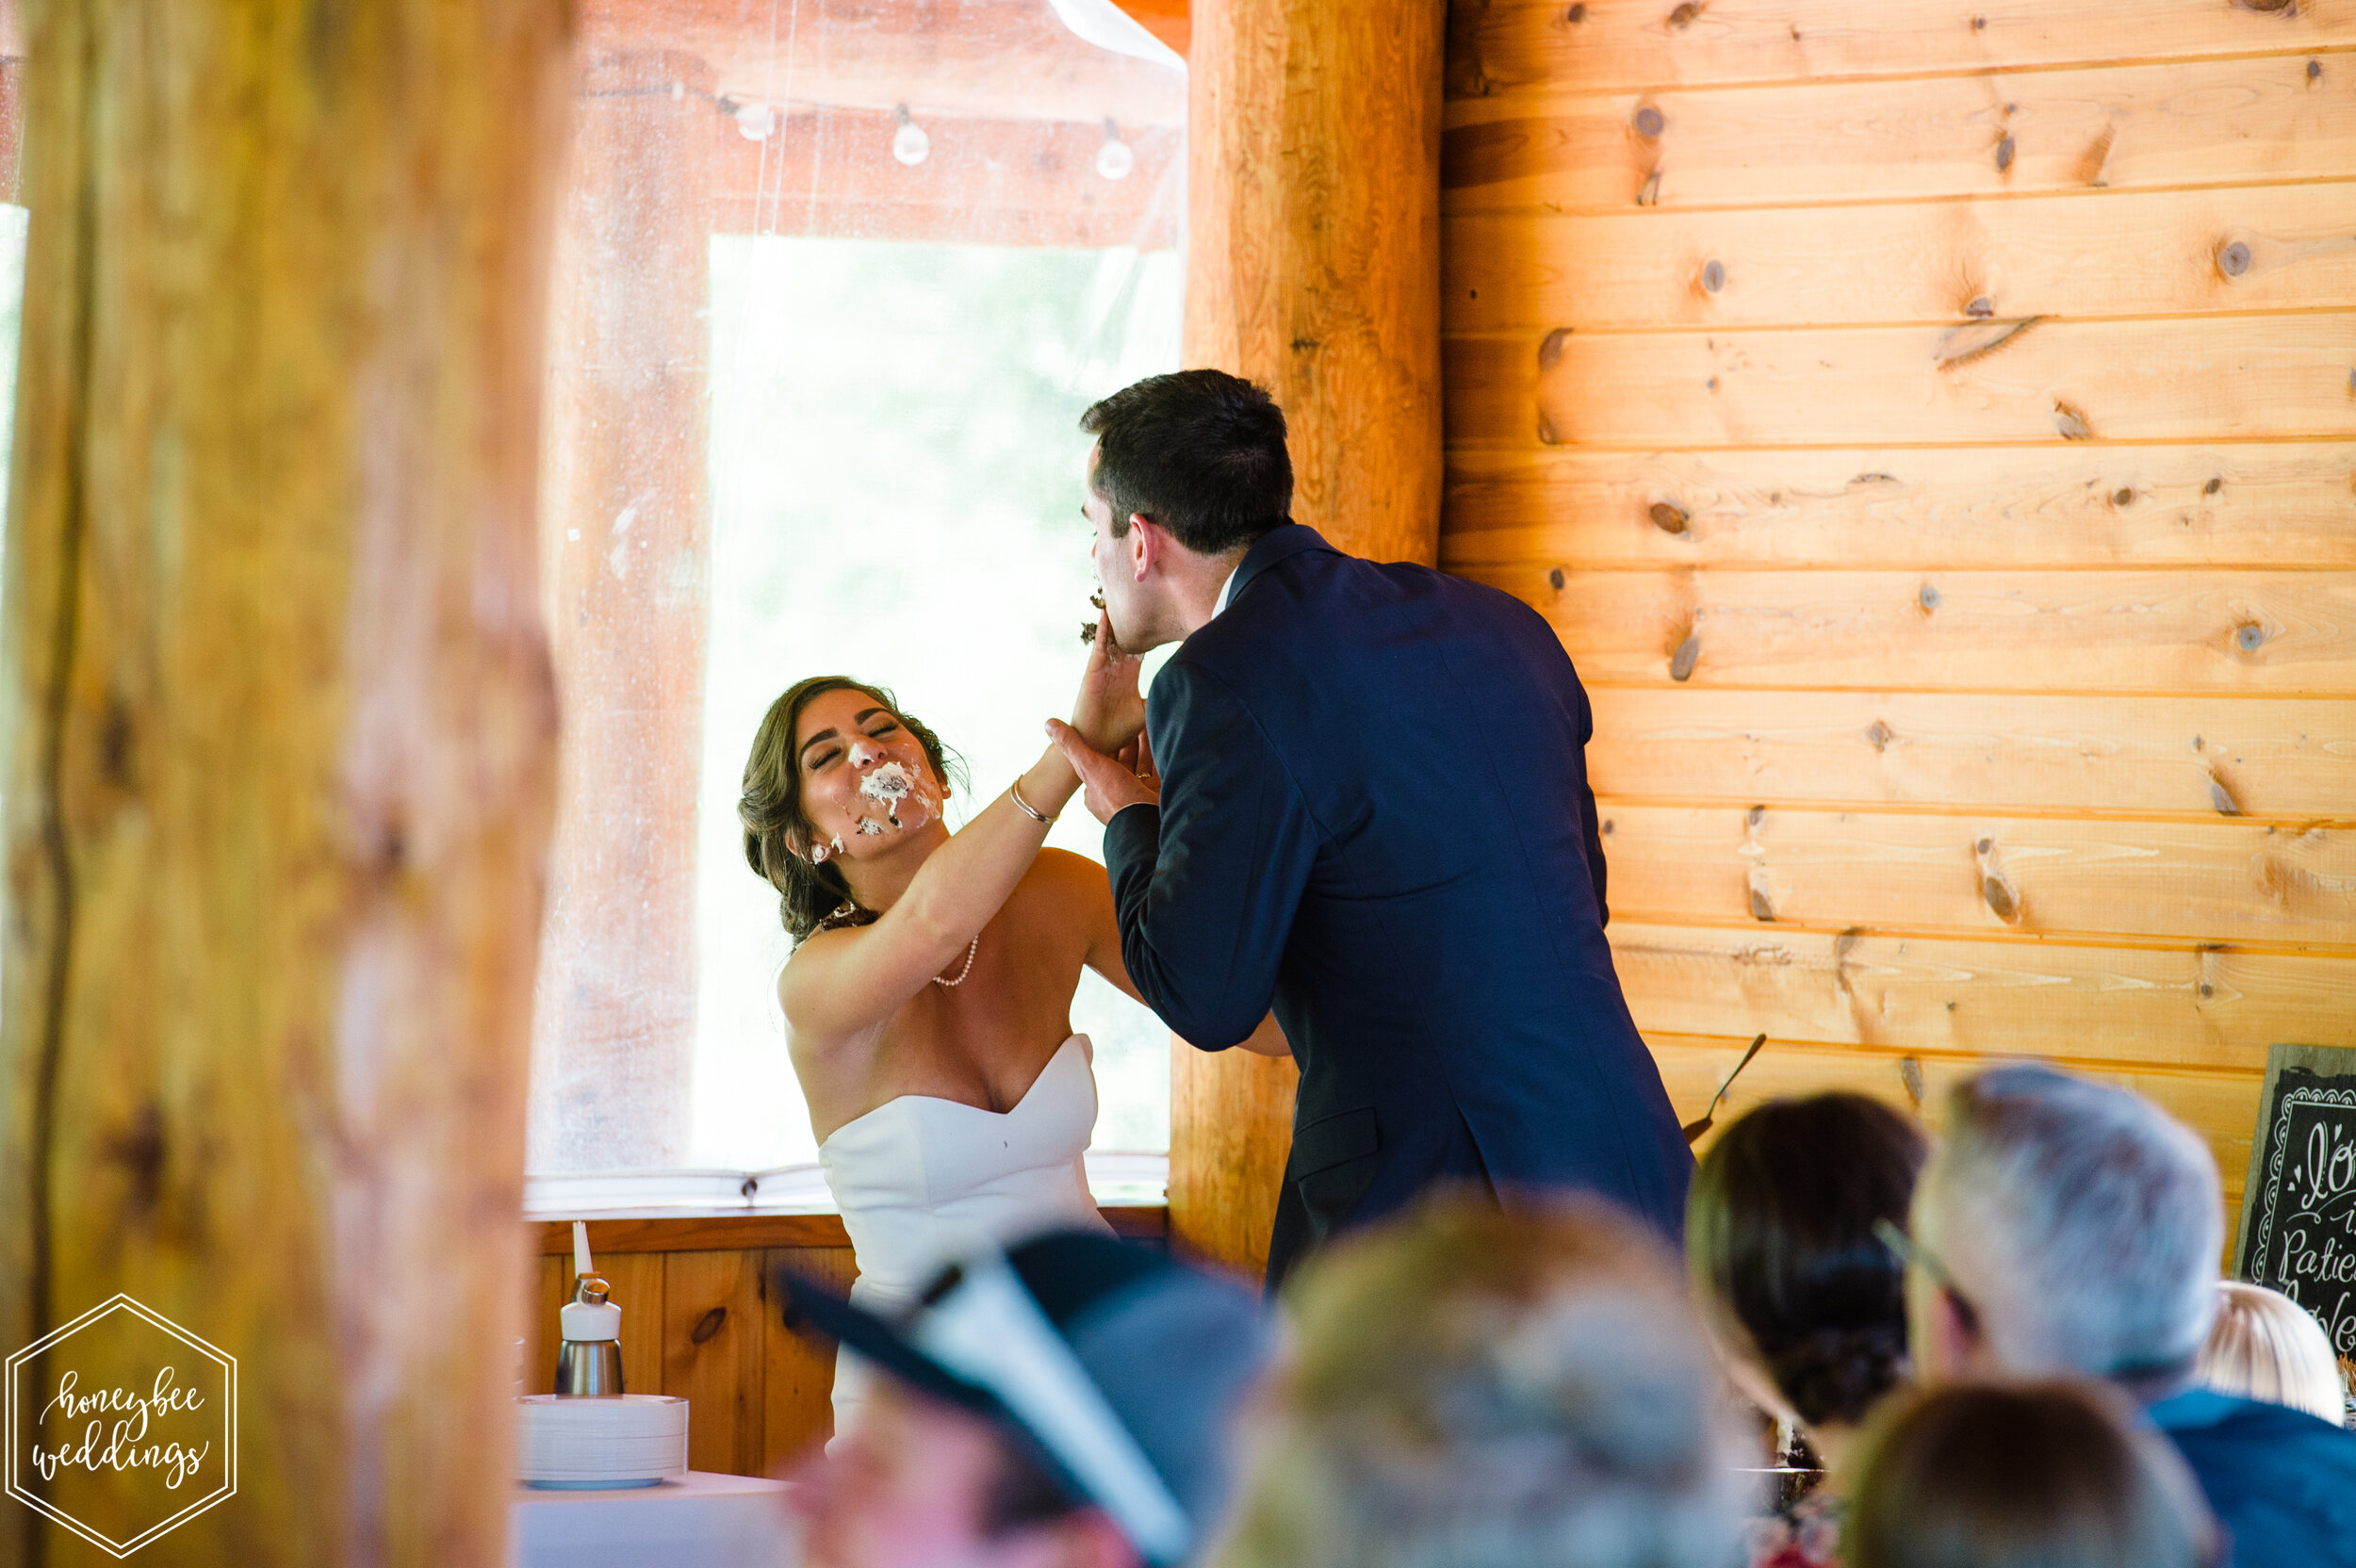 114Glacier National Park Wedding_Glacier Outdoor Center_Honeybee Weddings_Anna & Seth_July 21, 2019-387.jpg